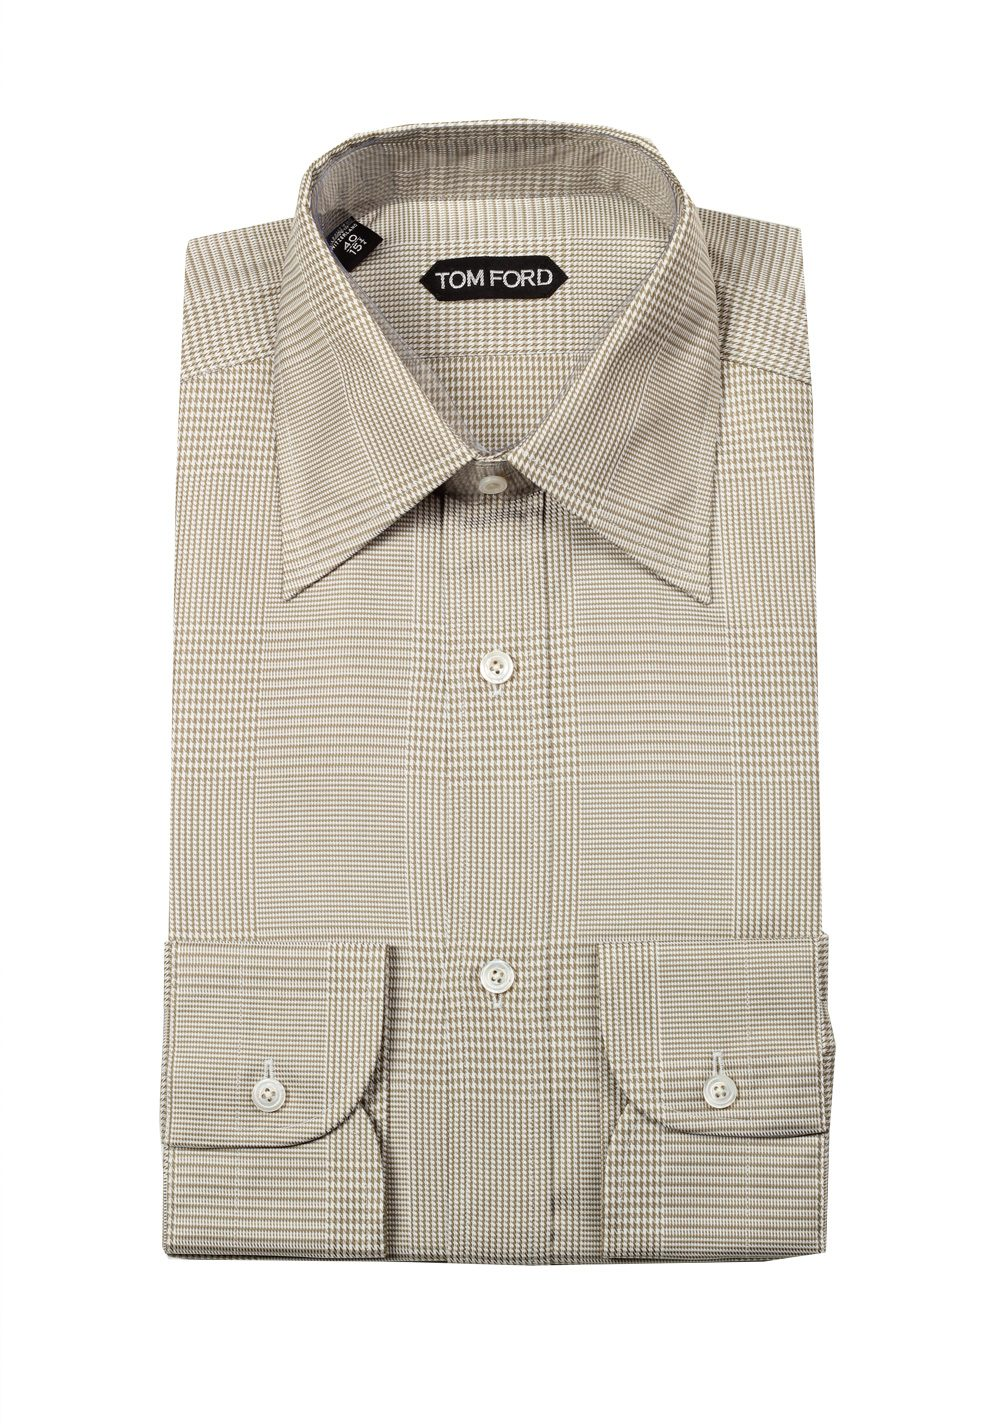 Tom ford checked beige dress shirt size 40 15 75 u s for Size 15 dress shirt